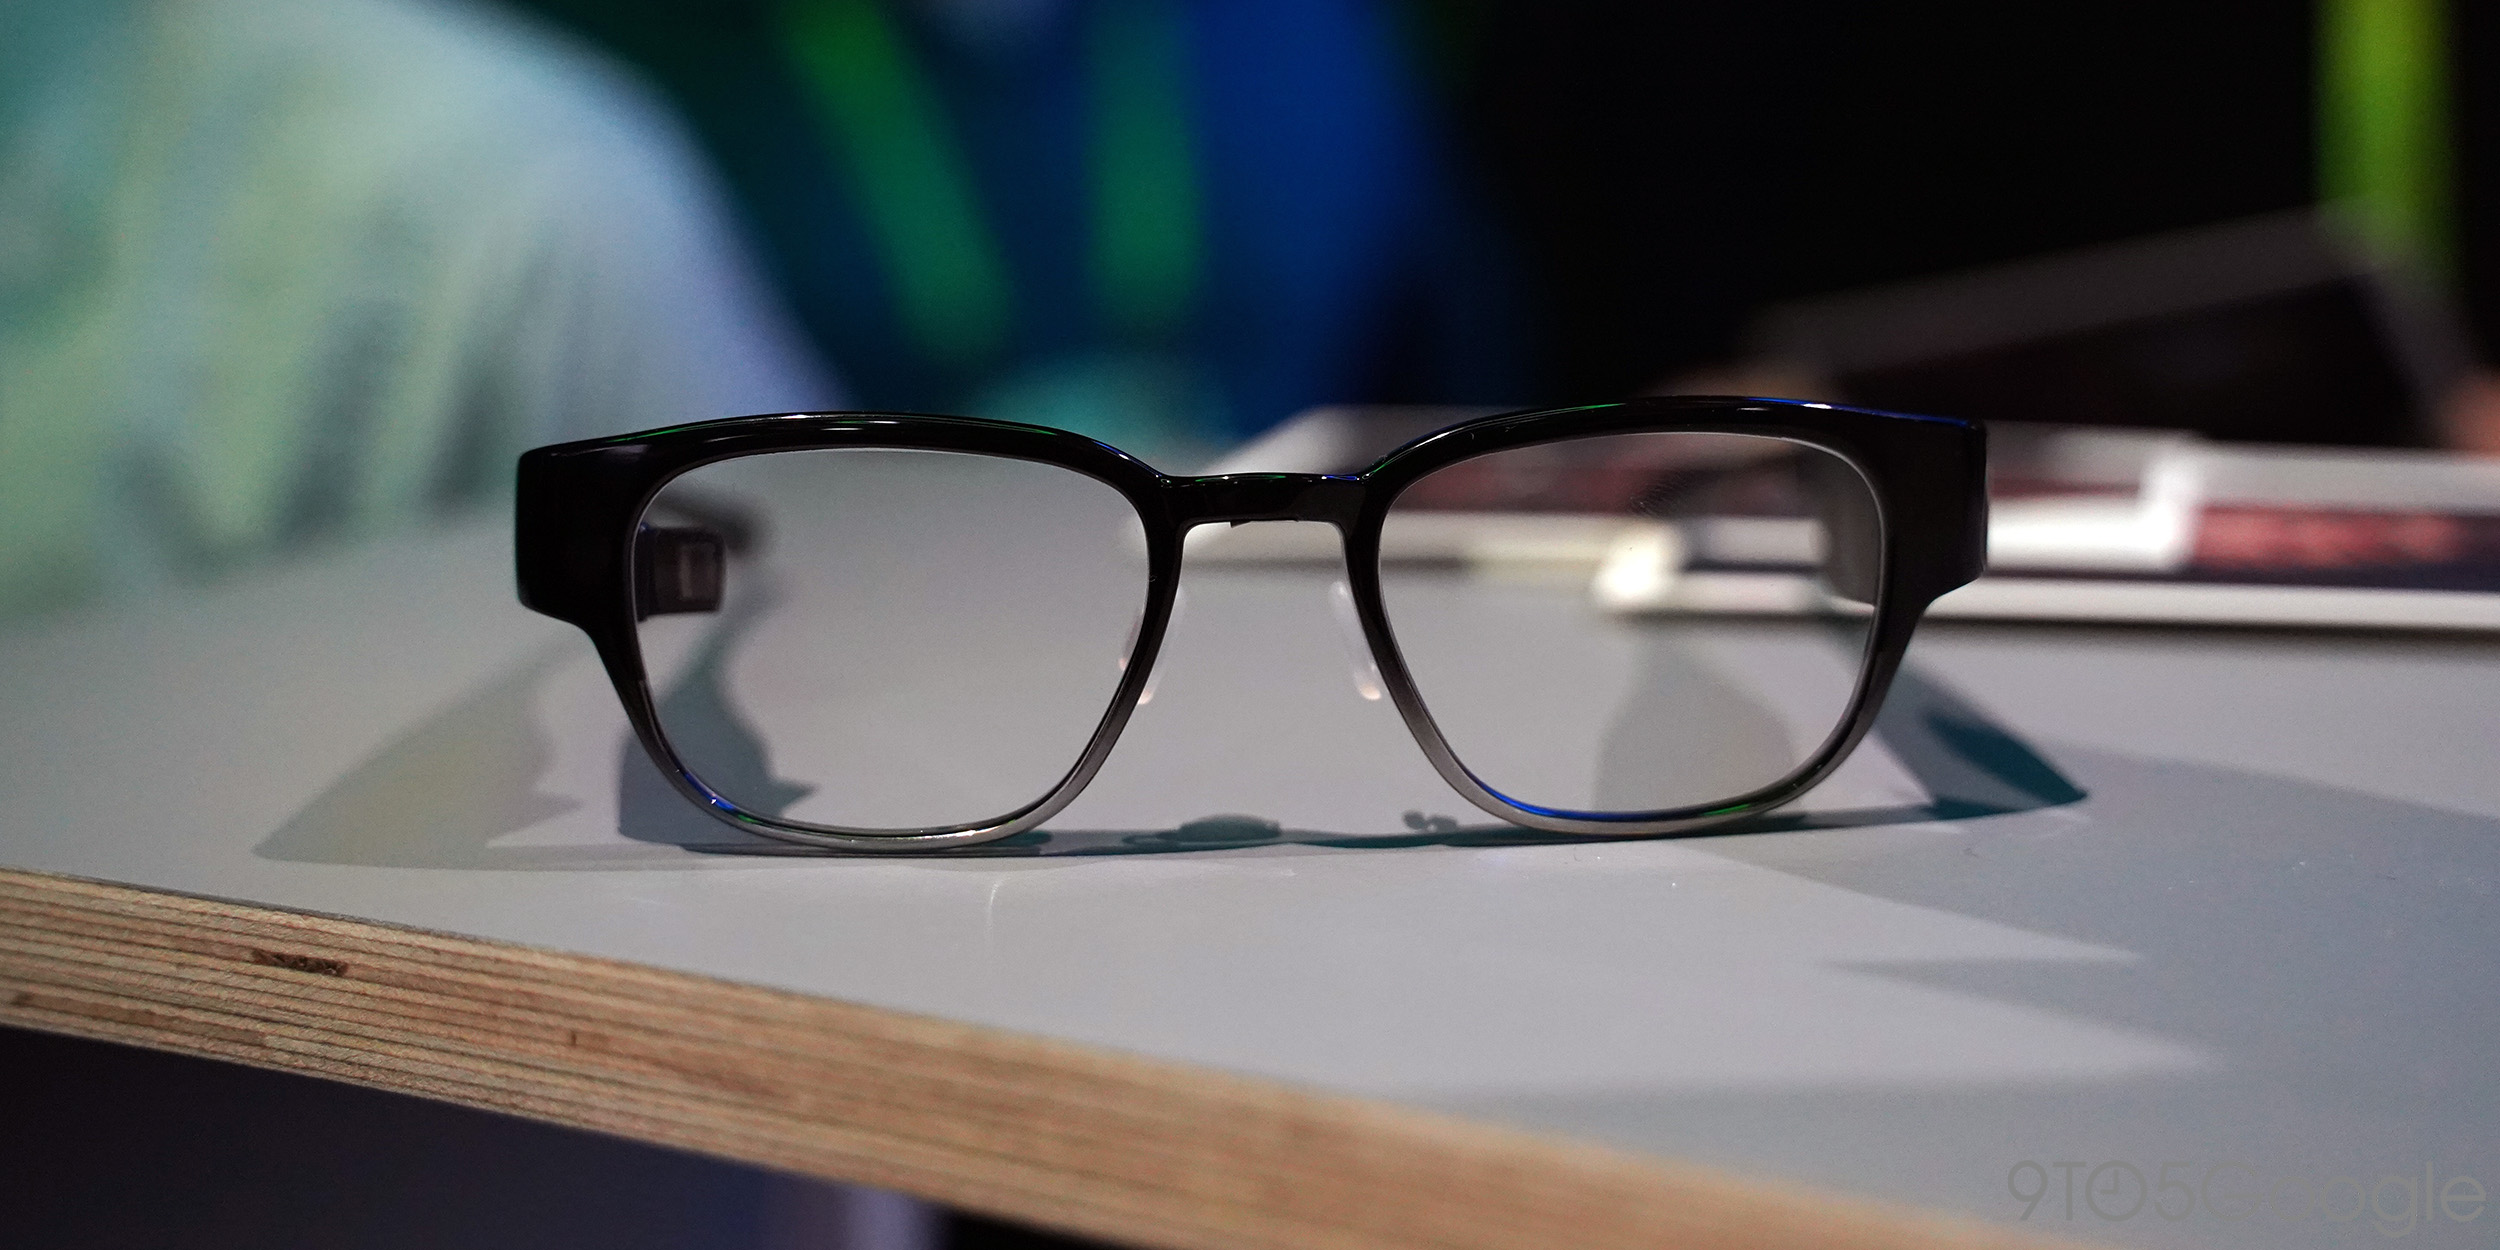 b1a2c93458b Hands-on  Focals by North are the AR glass Pebble moment - 9to5Google